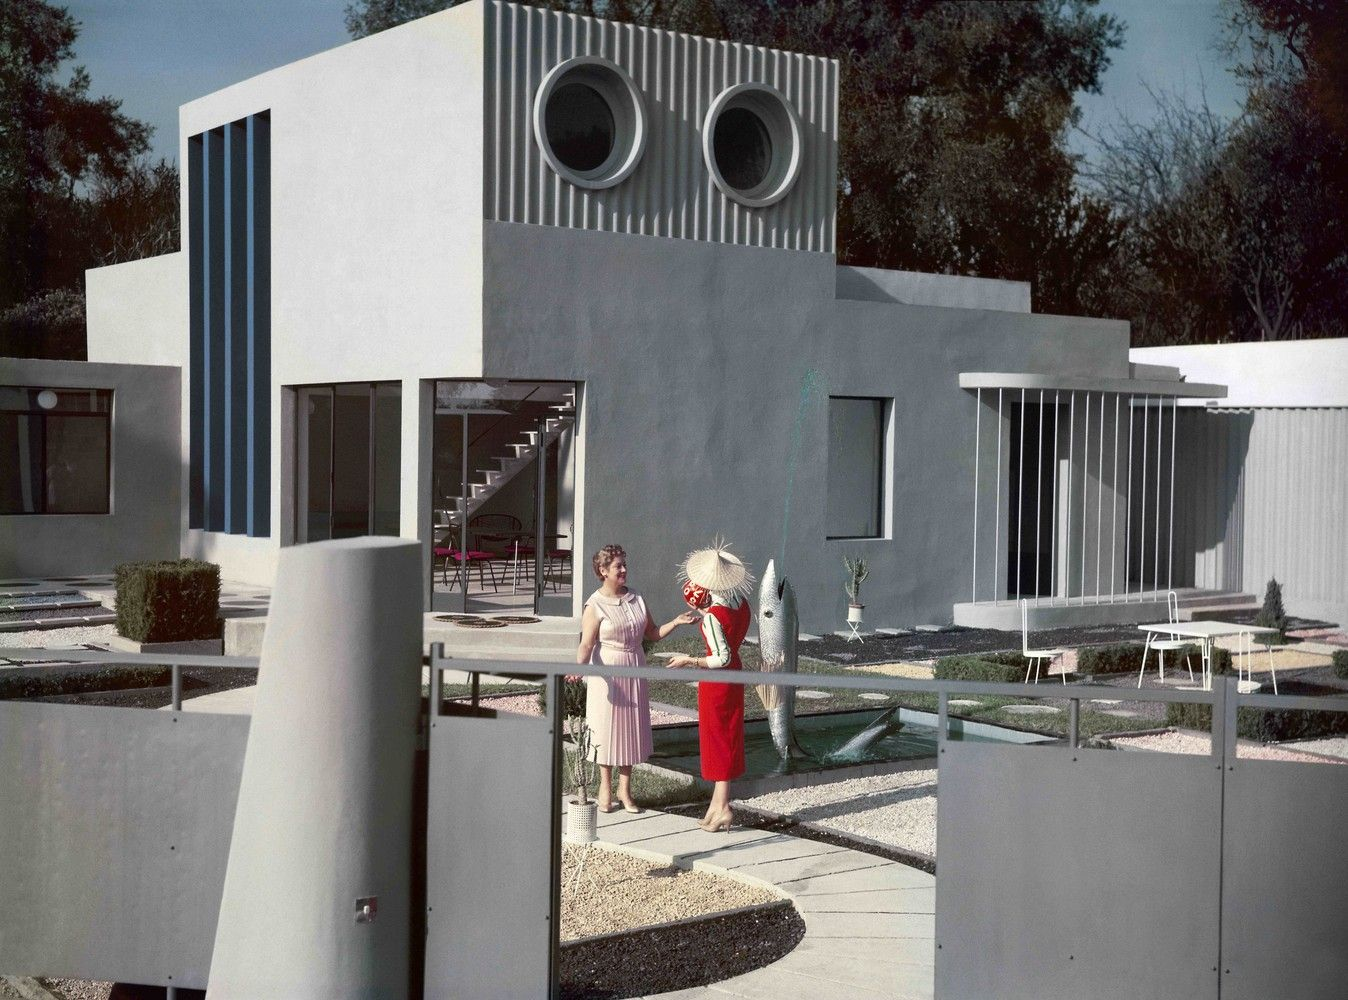 Tel Aviv Museum Of Art Examines The International Circulation Of Prefab Concrete Panels,Still from film Mon Oncle, 1958, director Jacques Tati. © Les Films de Mon oncle – Specta Films CEPEC in Modernity, Promise or Menace?, 2014. A film by Teri Wehn Damisch and Jean-Louis Cohen. Image Courtesy of Tel Aviv Museum of Art